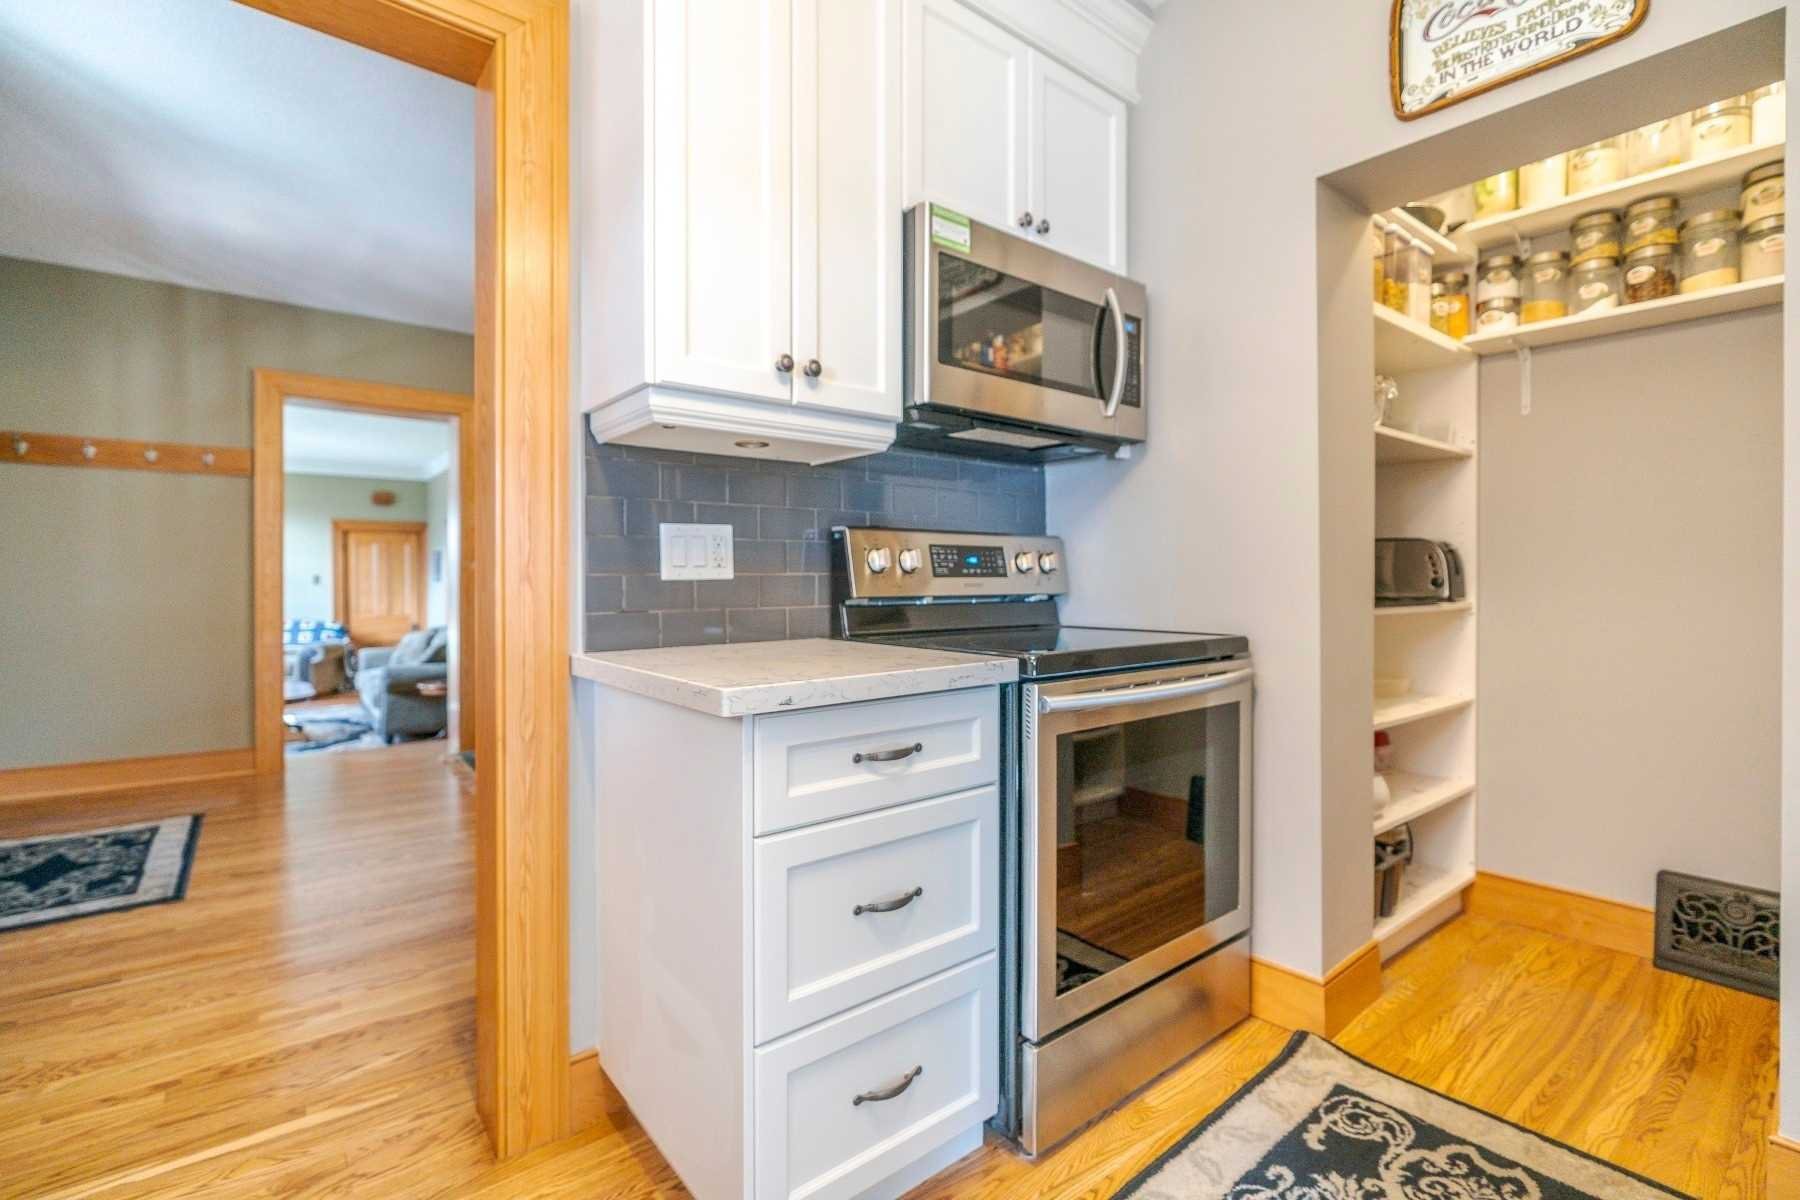 Photo 10: Photos: 1009 S Centre Street in Whitby: Downtown Whitby House (Bungalow) for sale : MLS®# E4714116